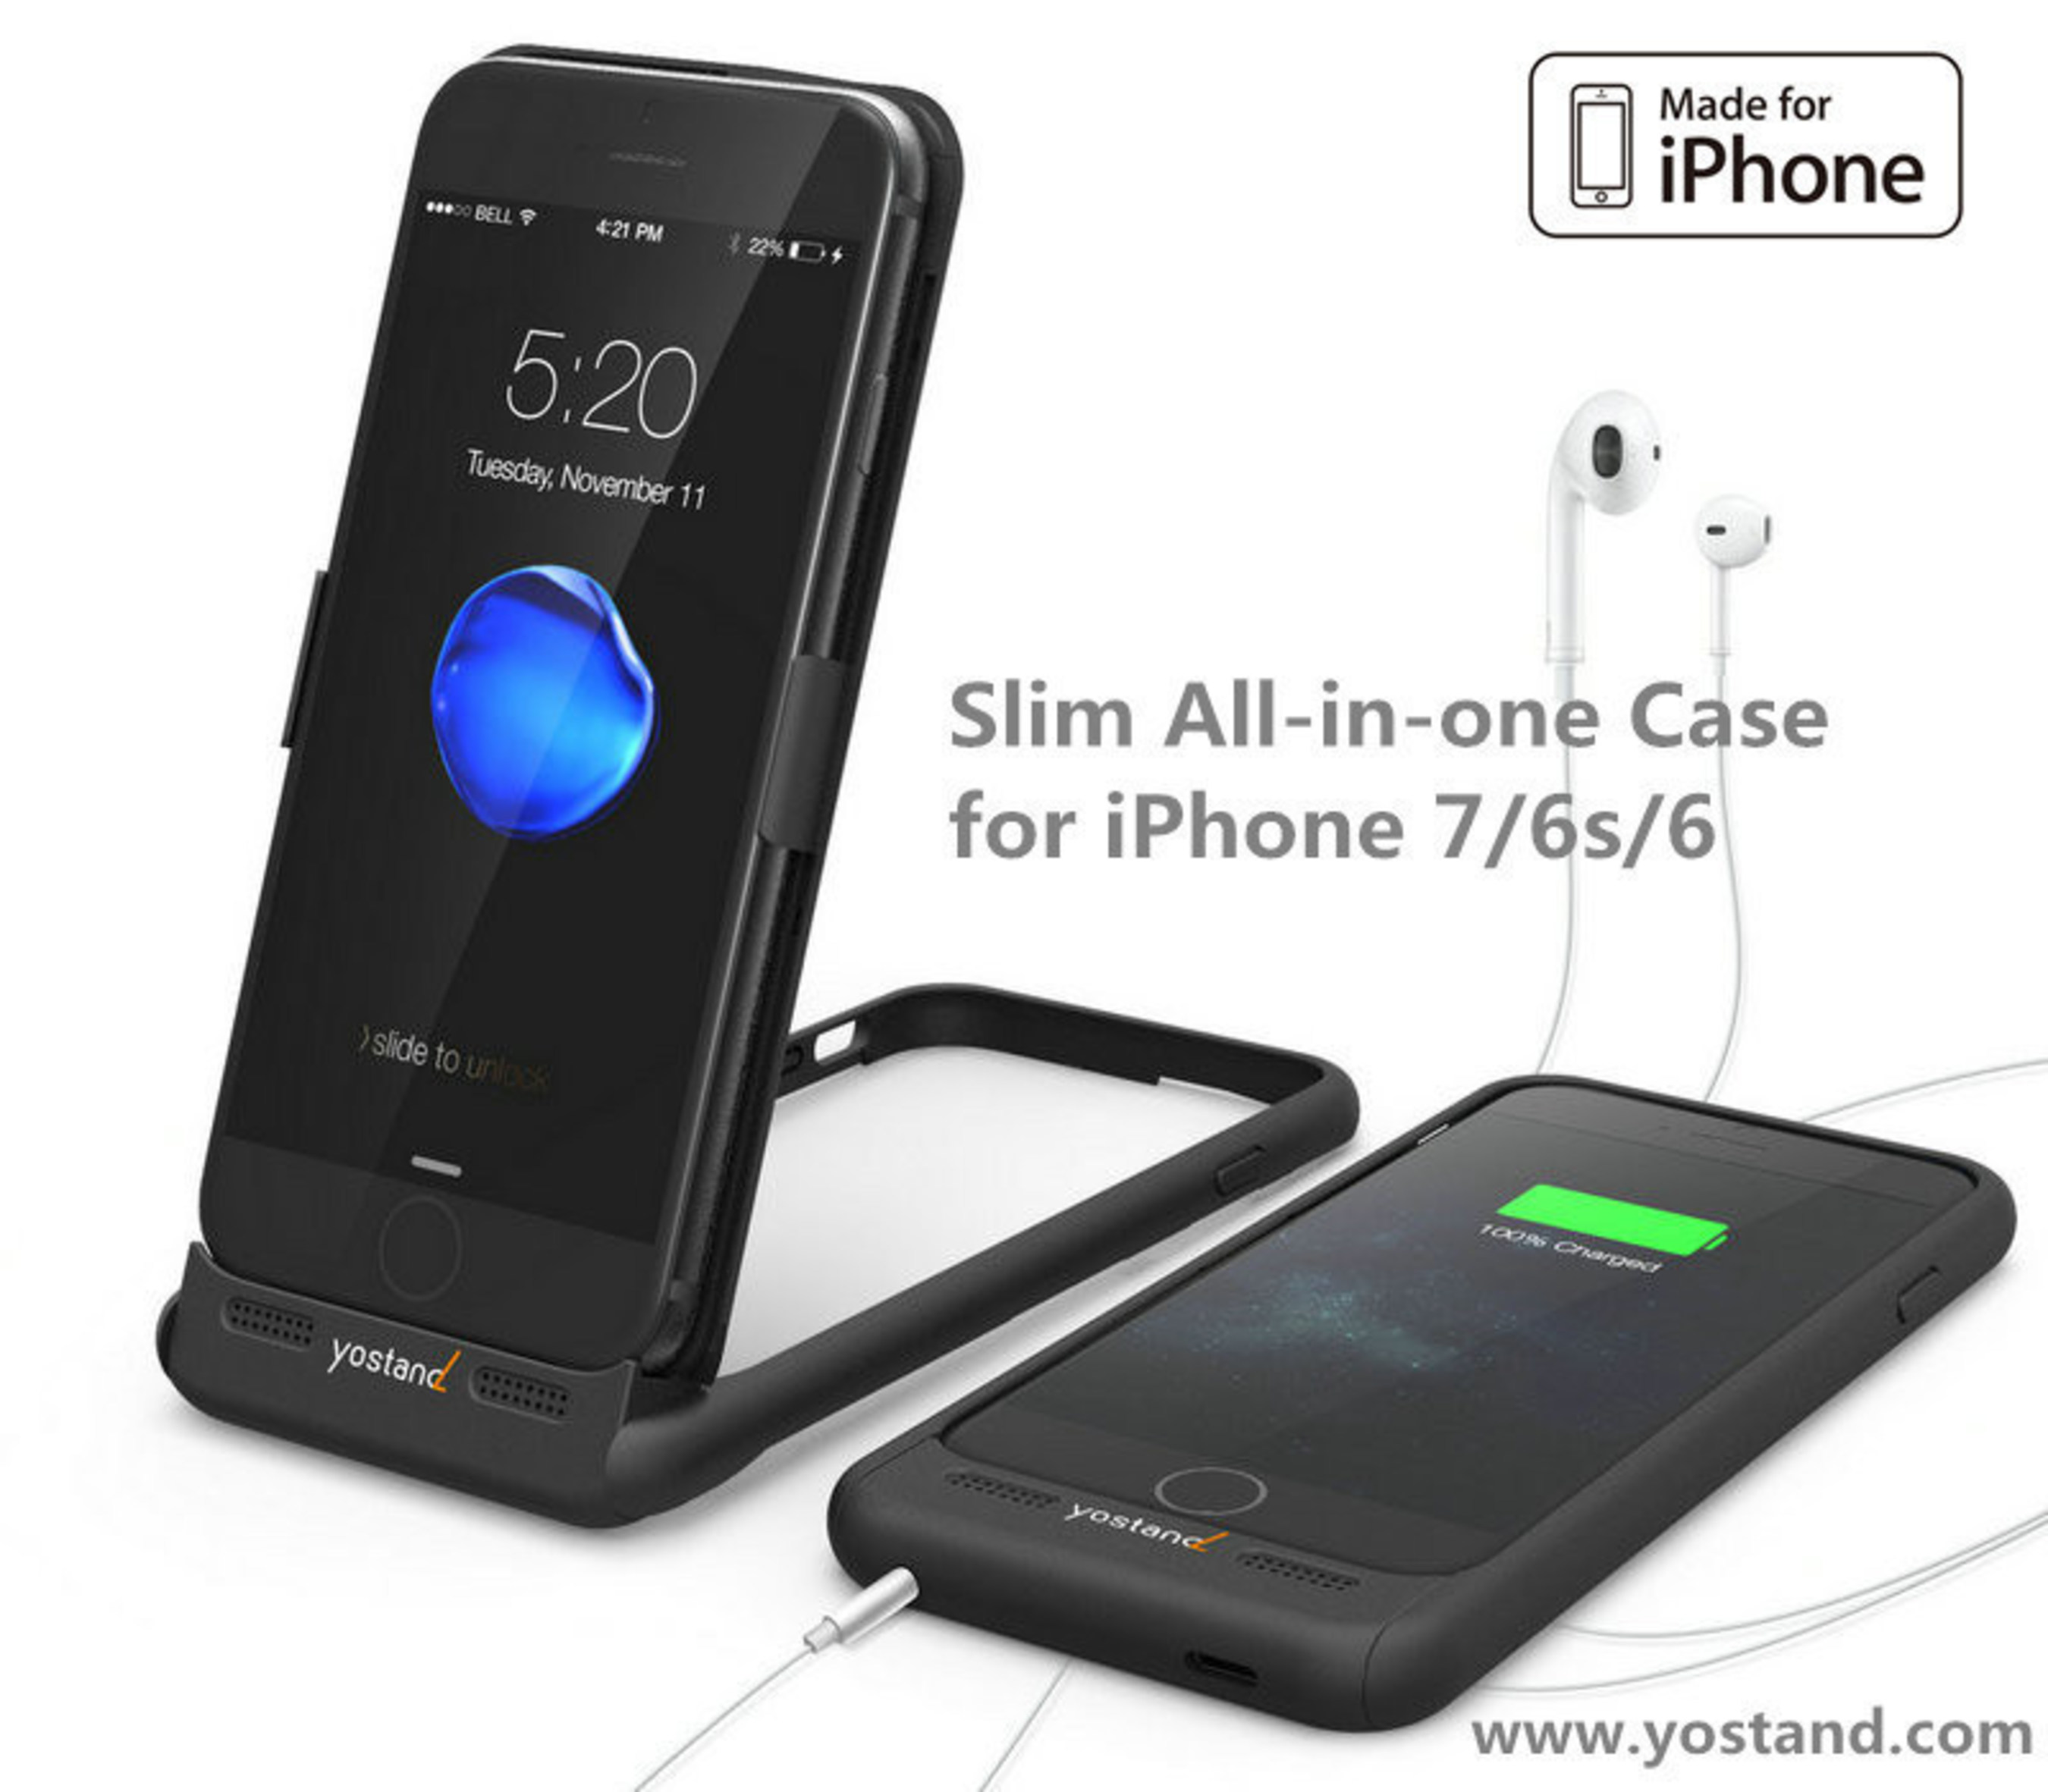 competitive price 1f454 8805b iStand 7 Combines Dock, 3.5mm Headphone Jack into This Slim Battery Case